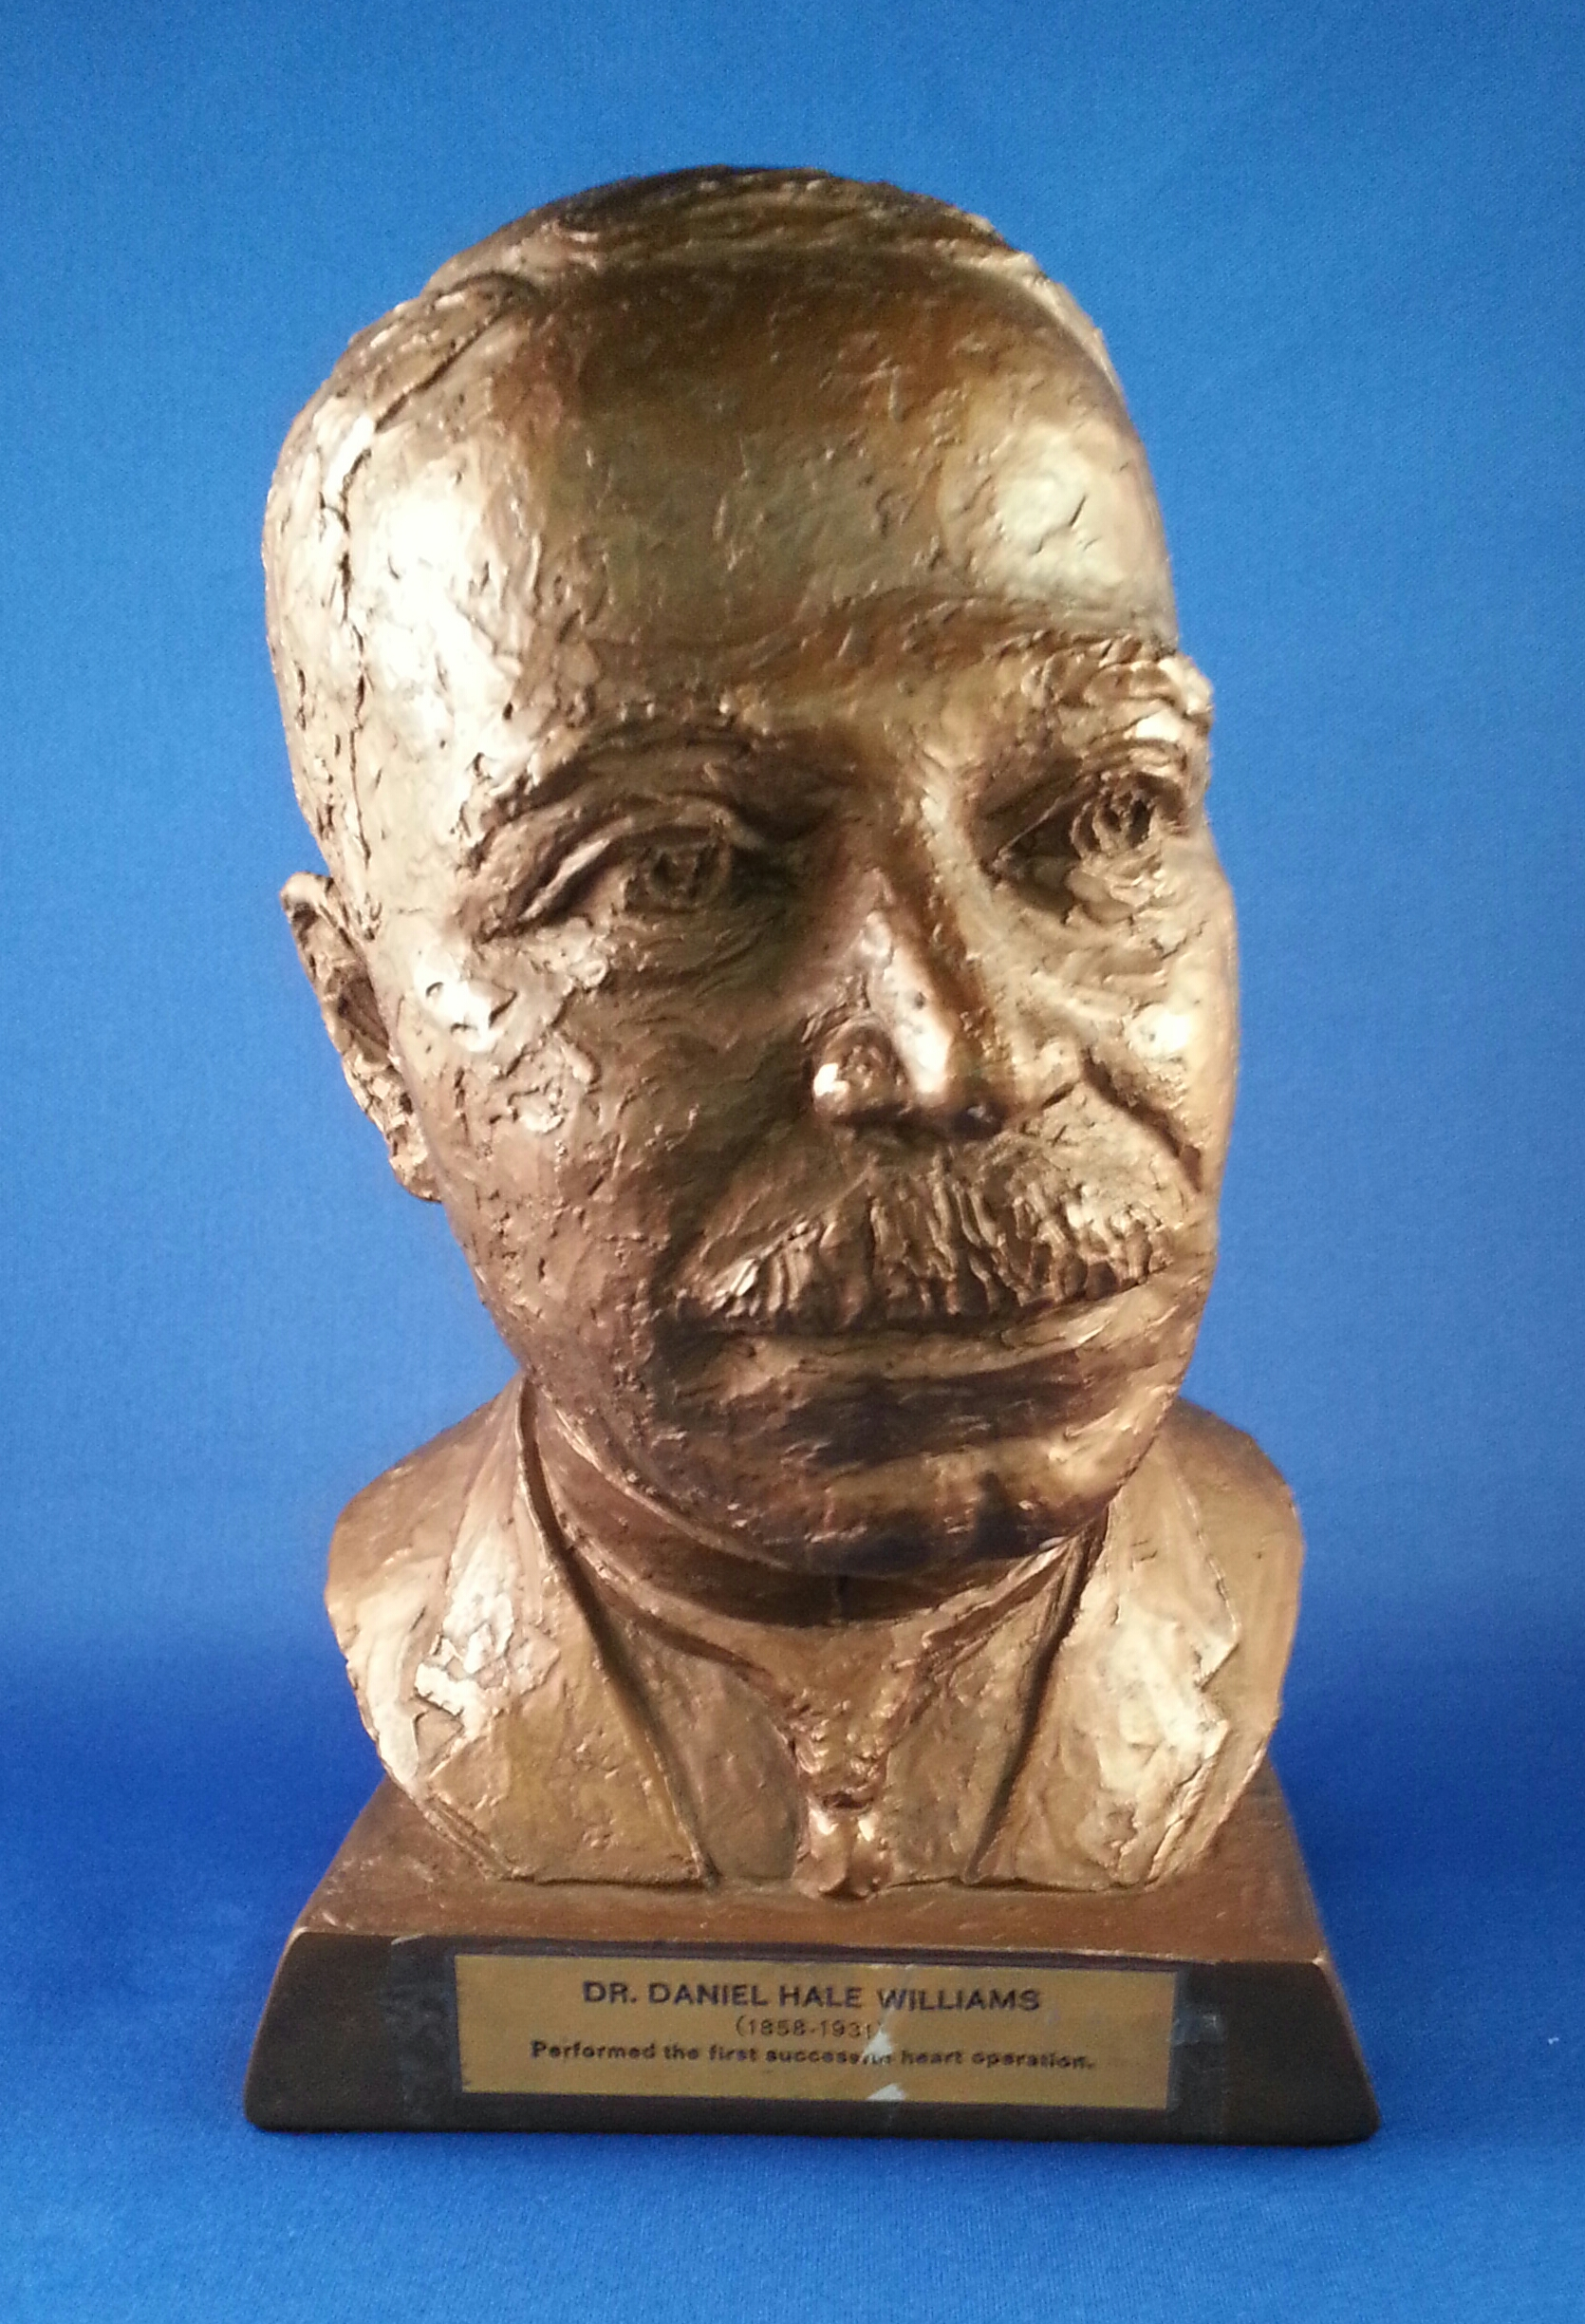 Bust of Dr. Daniel Hale Williams